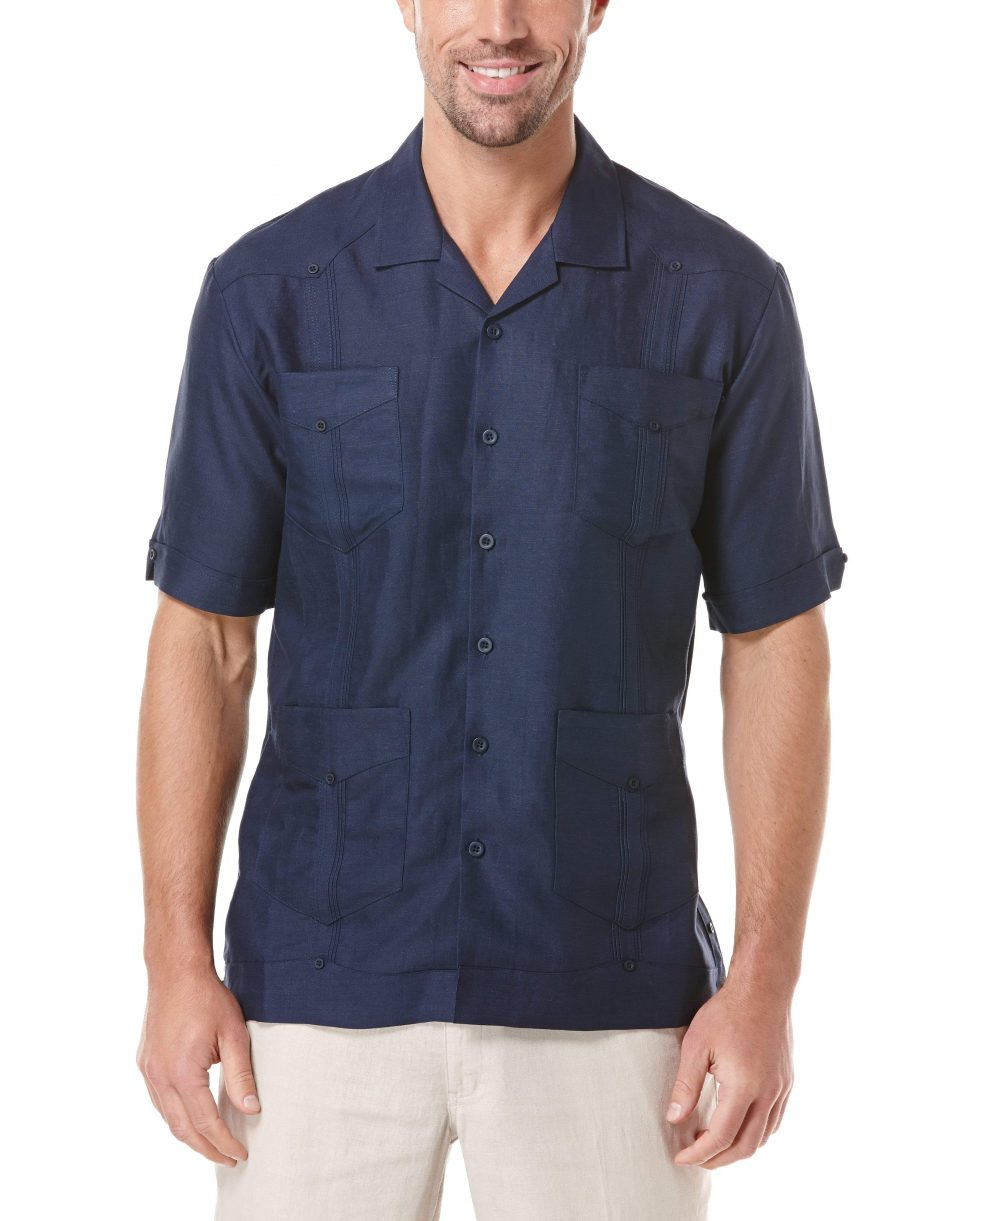 Cubavera Men's Big & Tall Classic Guayabera Shirt (Dress Blues) - Size 4X